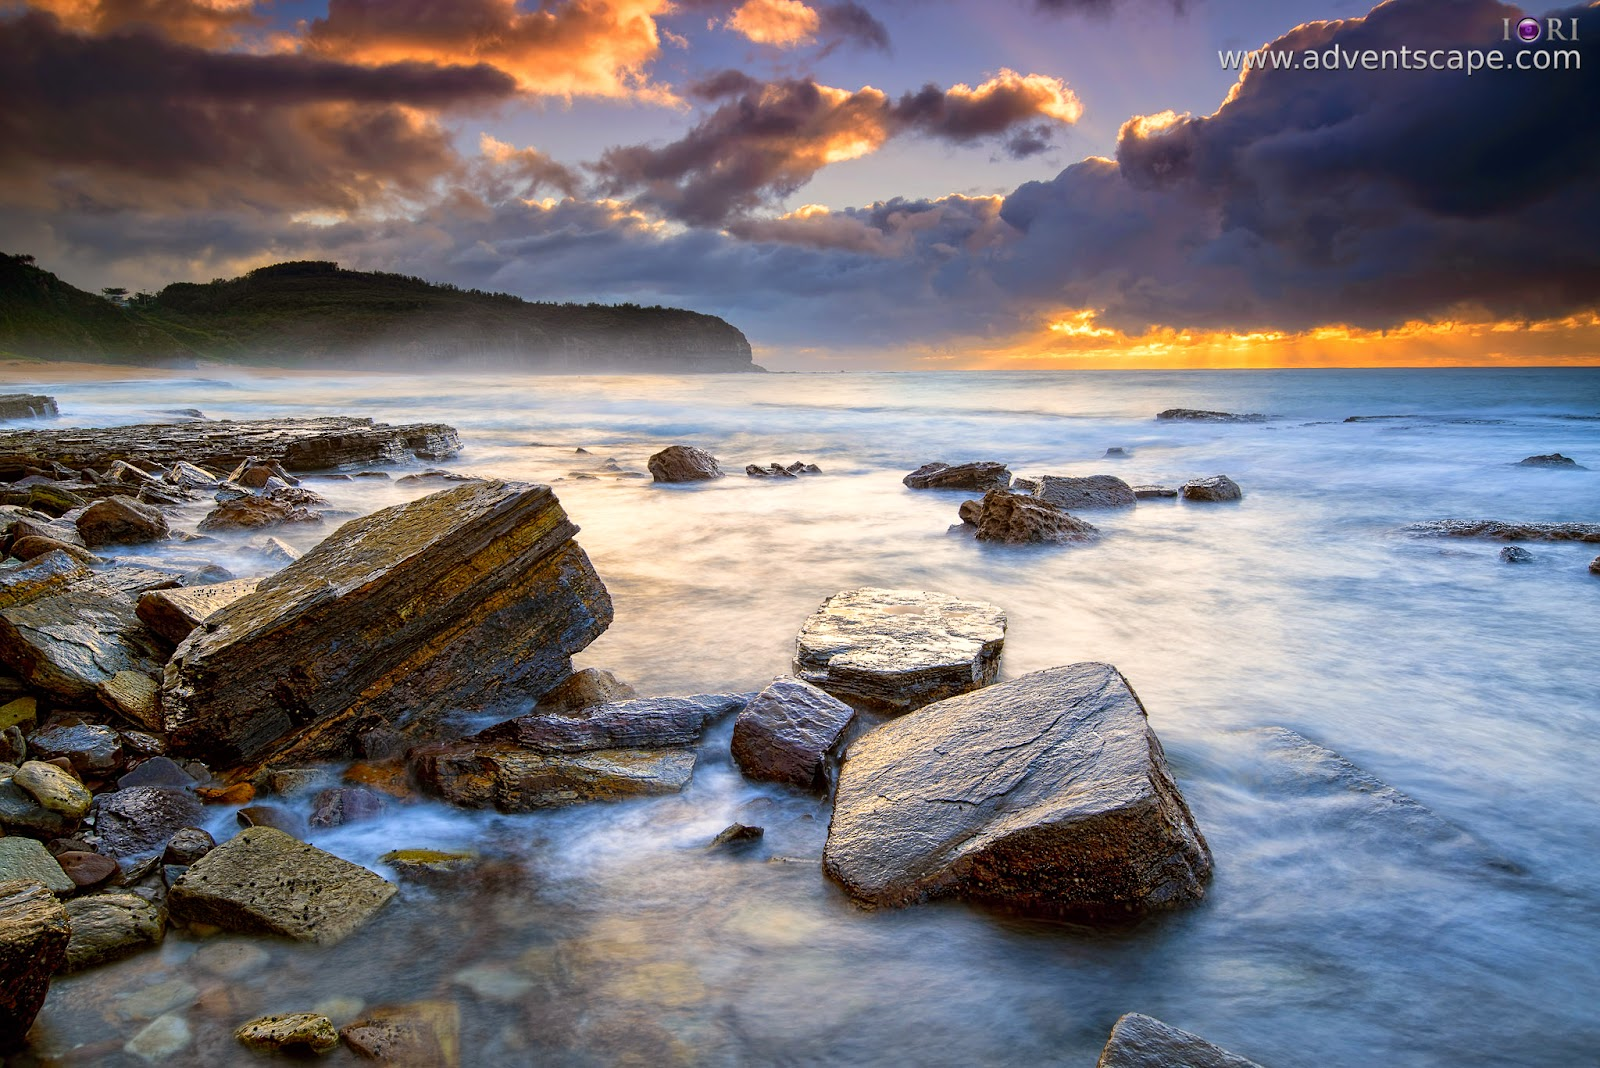 Australia, Australian Landscape Photographer, beach, coastline, golden hour, landscape, Narrabeen, Narrabeen Head, New South Wales, Northern Beaches, NSW, Philip Avellana, seascape, sunrise, Turimetta, Warriewood, Australian landscape photographer